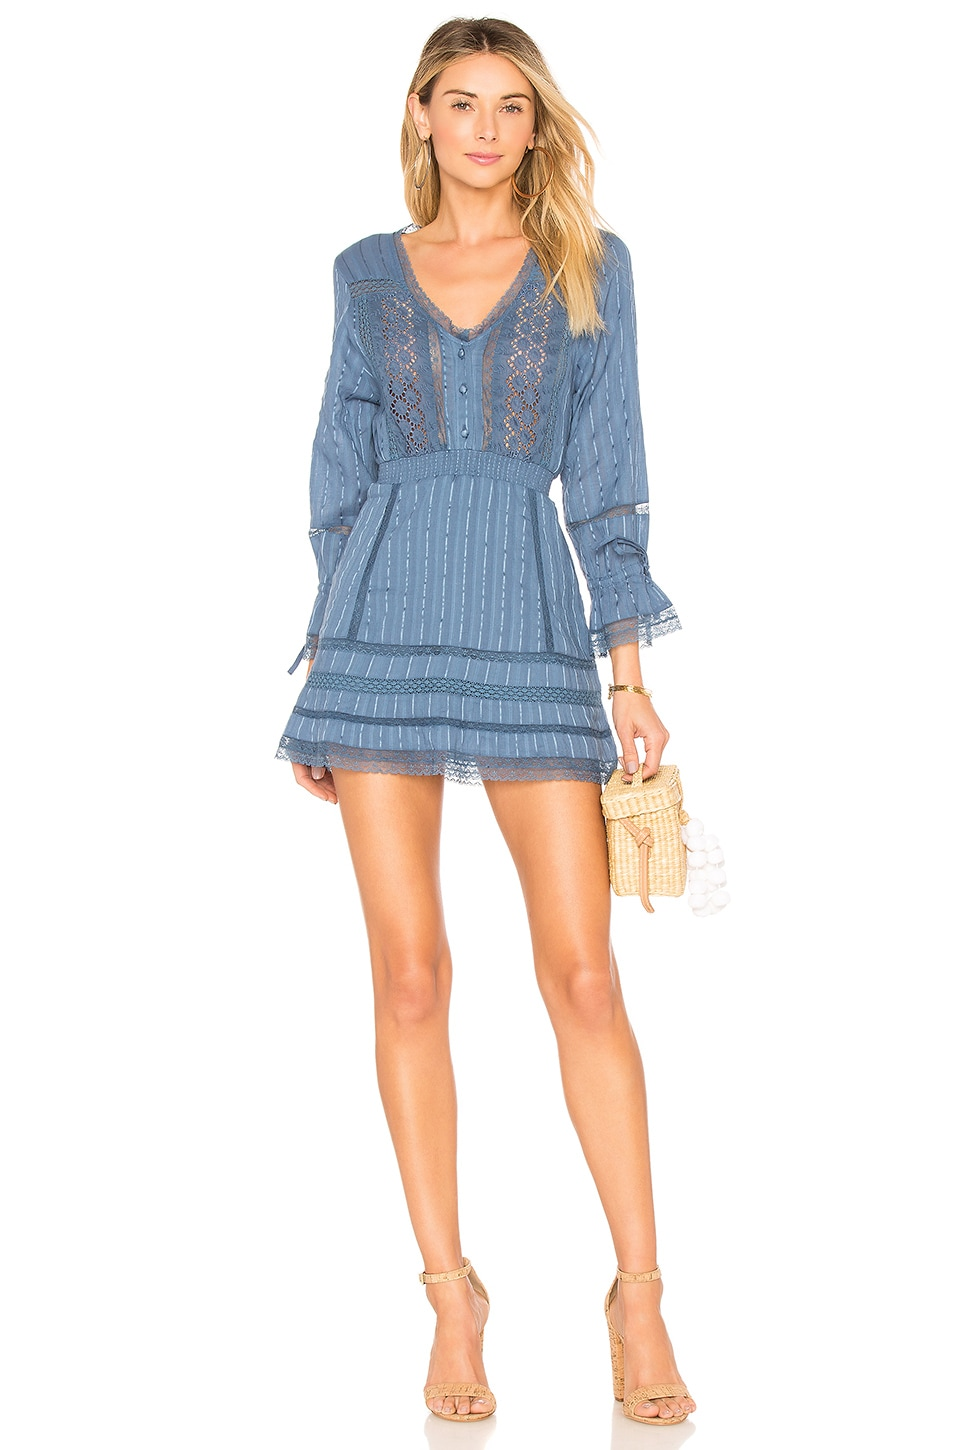 Tularosa Payton Dress in Horizon Blue